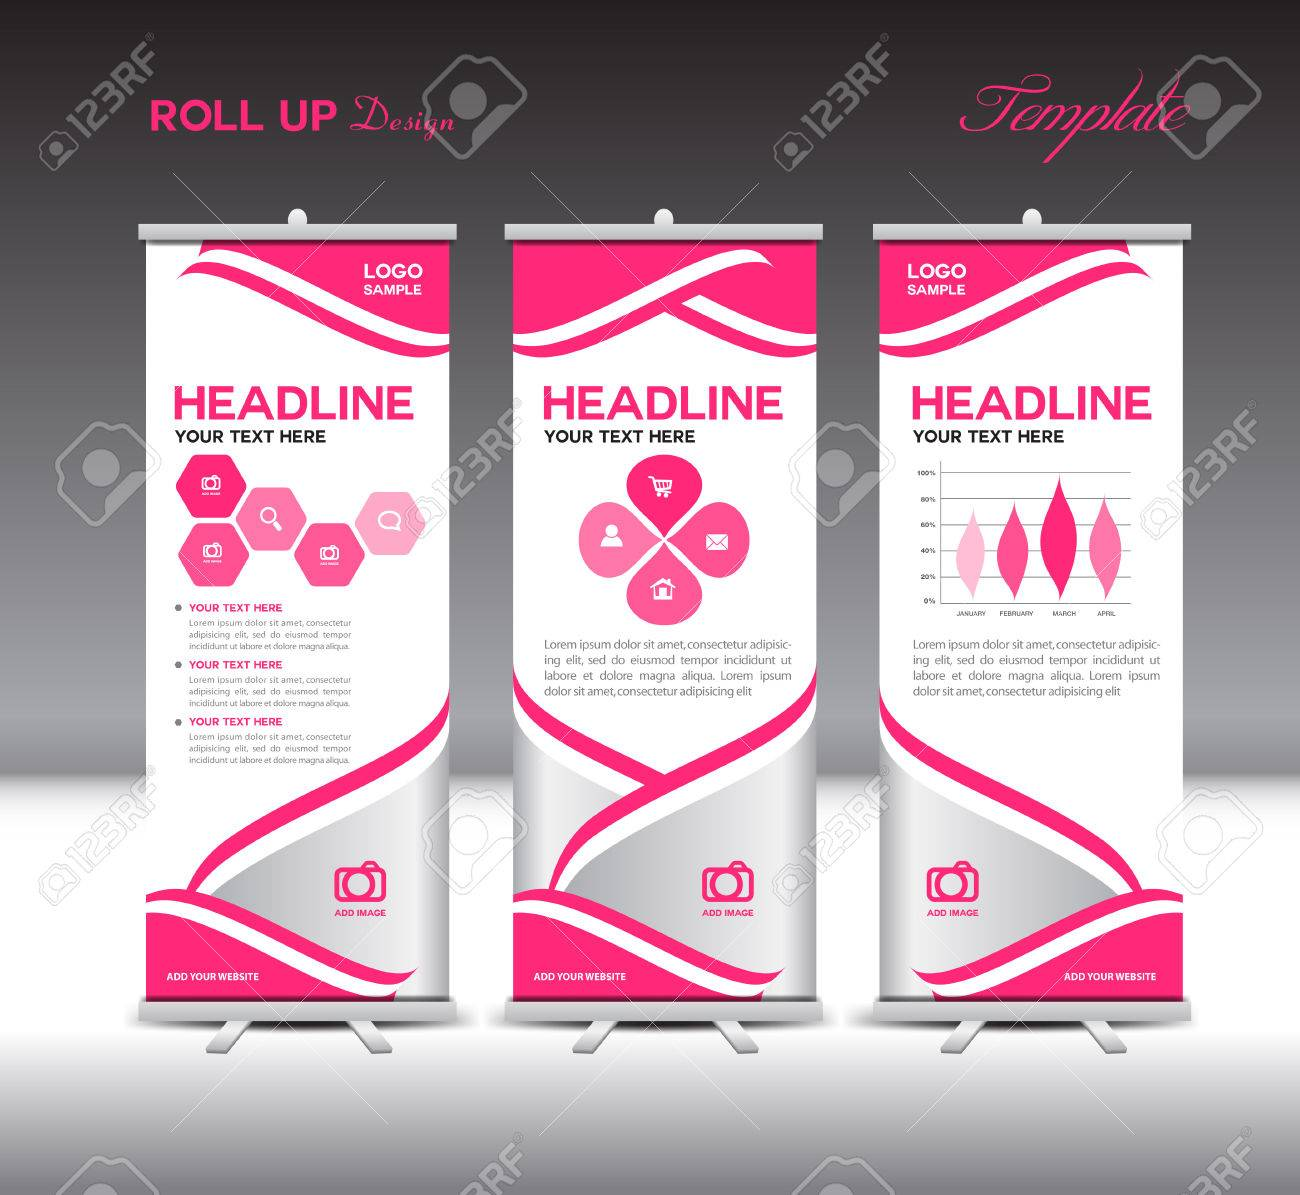 Pink Roll Up Banner Template And Info Graphics Elements, Stand ...